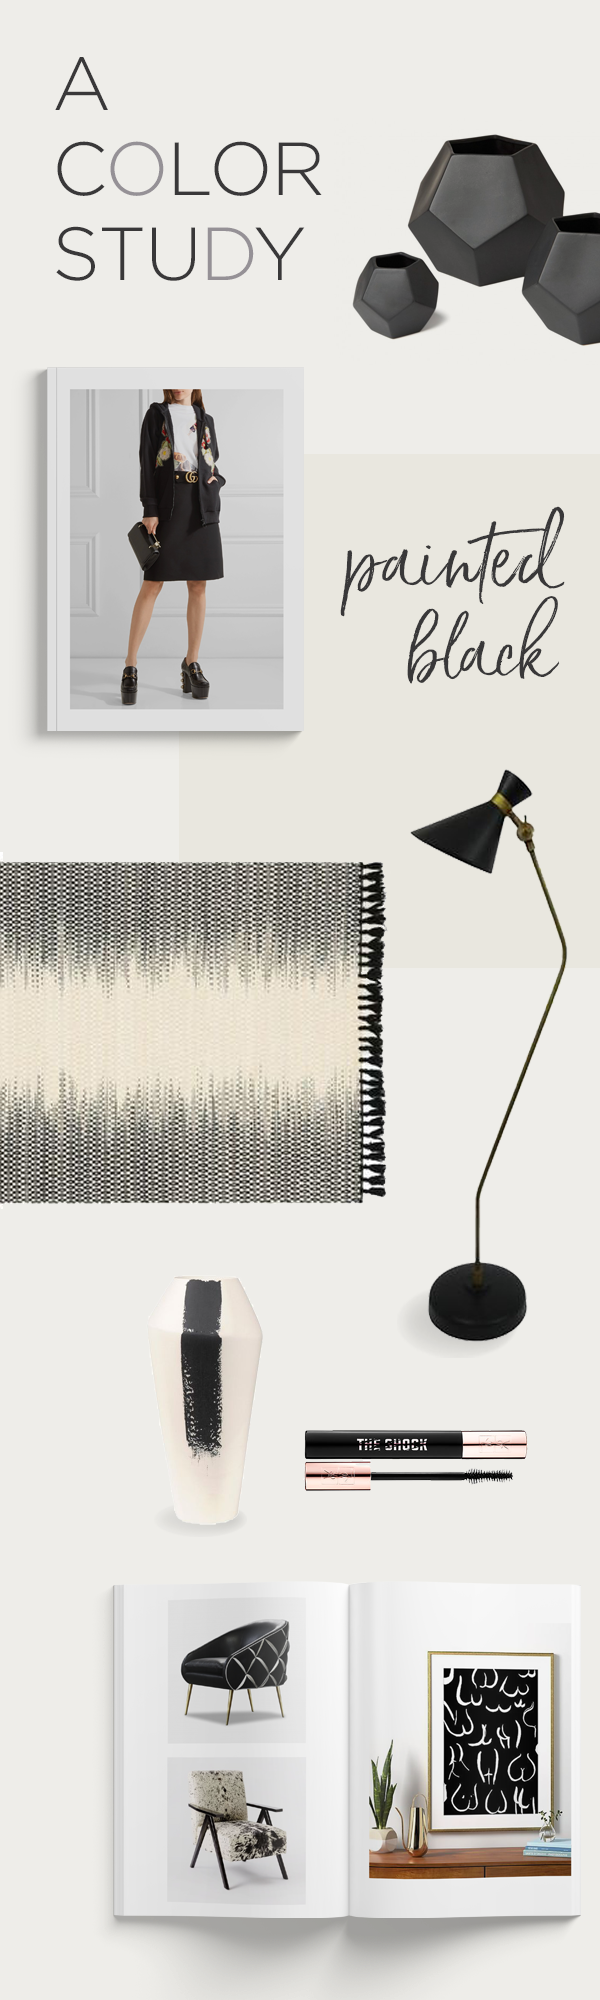 The Color Black: Black rug, black mid-century modern lamp, black chair, black vase